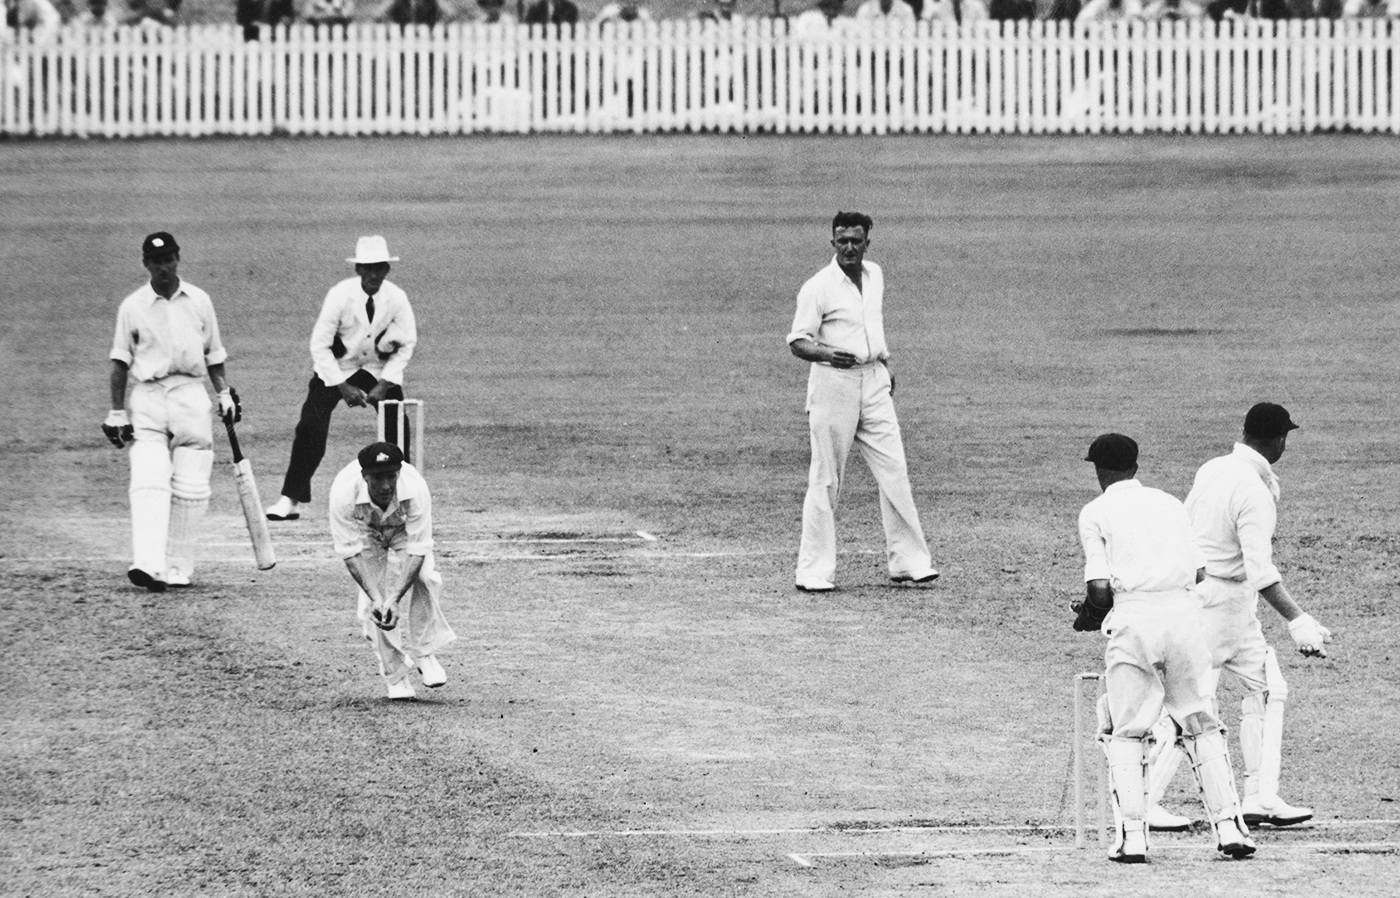 Sam Loxton takes a catch to dismiss Freddie Brown off Jack Iverson in the 1950-51 Ashes Test